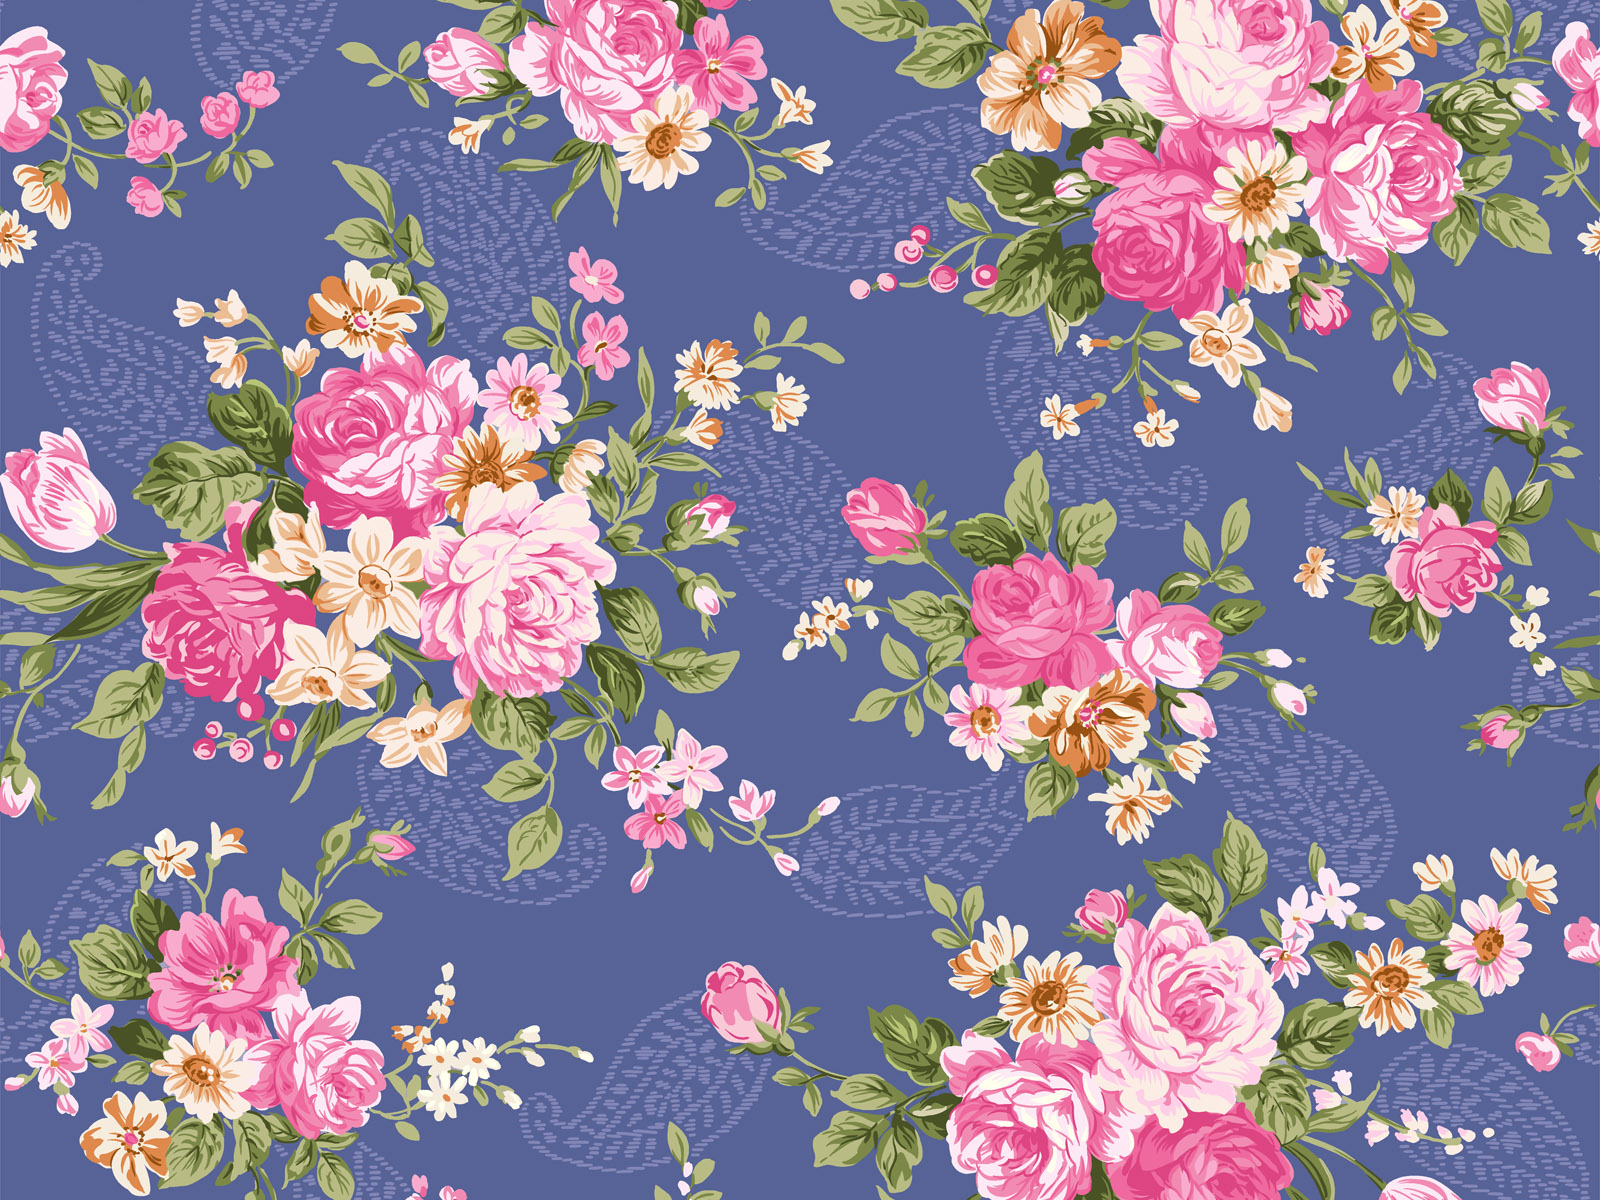 Background Wallpaper Pattern 204